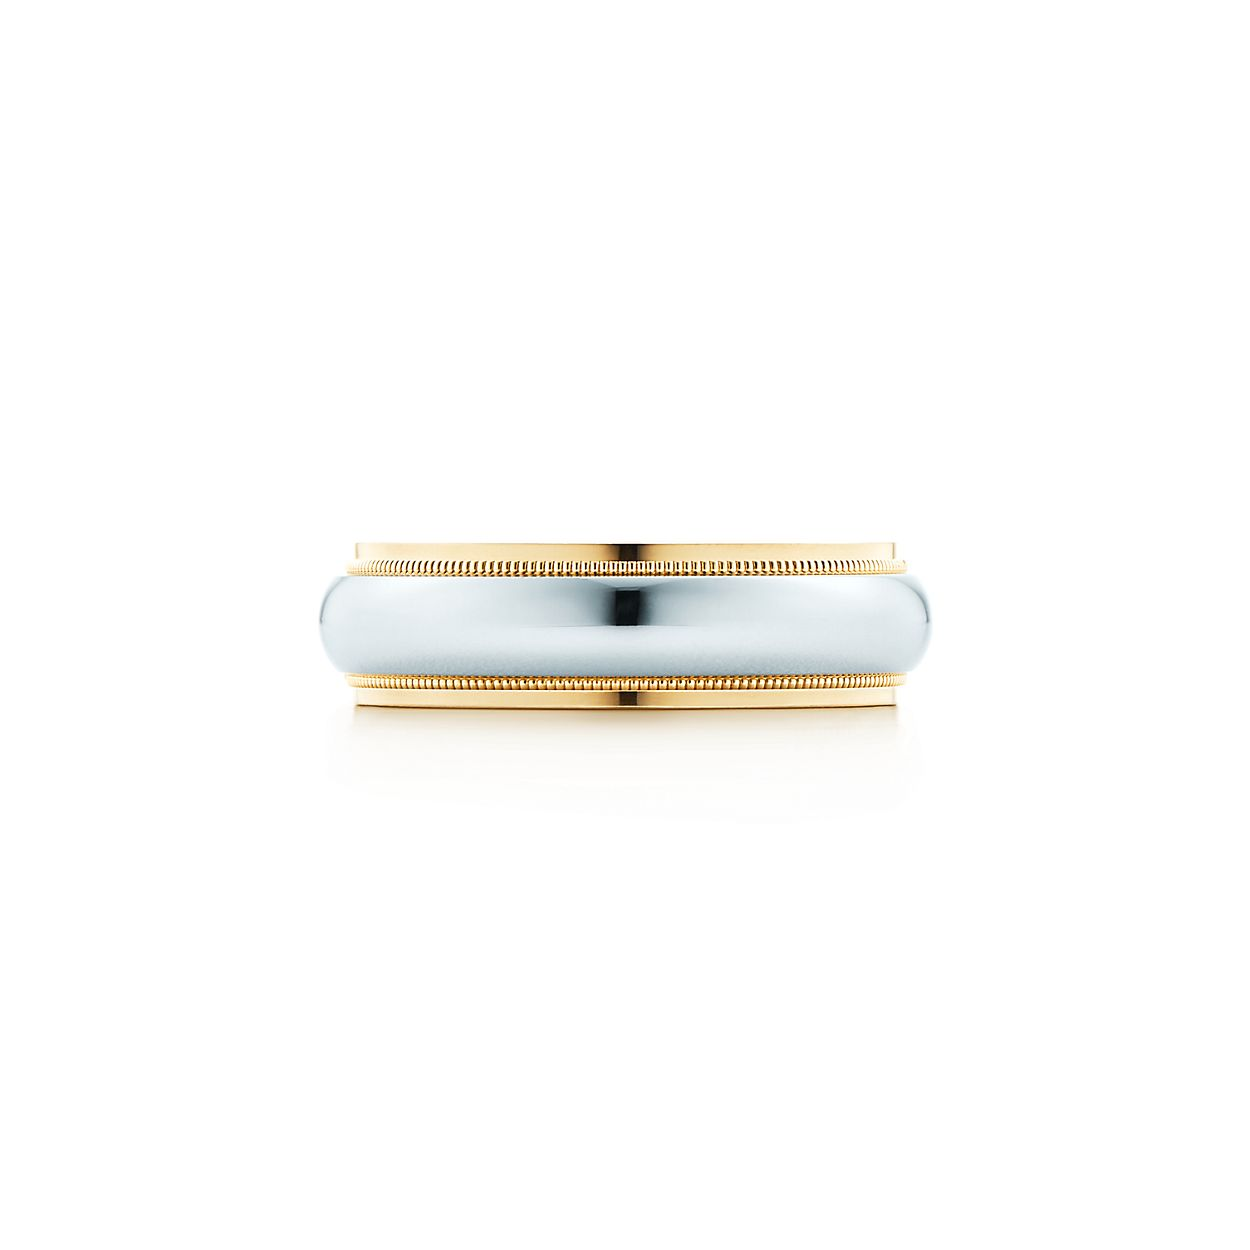 Tiffany Classic milgrain wedding band ring in platinum, 2 mm wide - Size 7 1/2 Tiffany & Co.